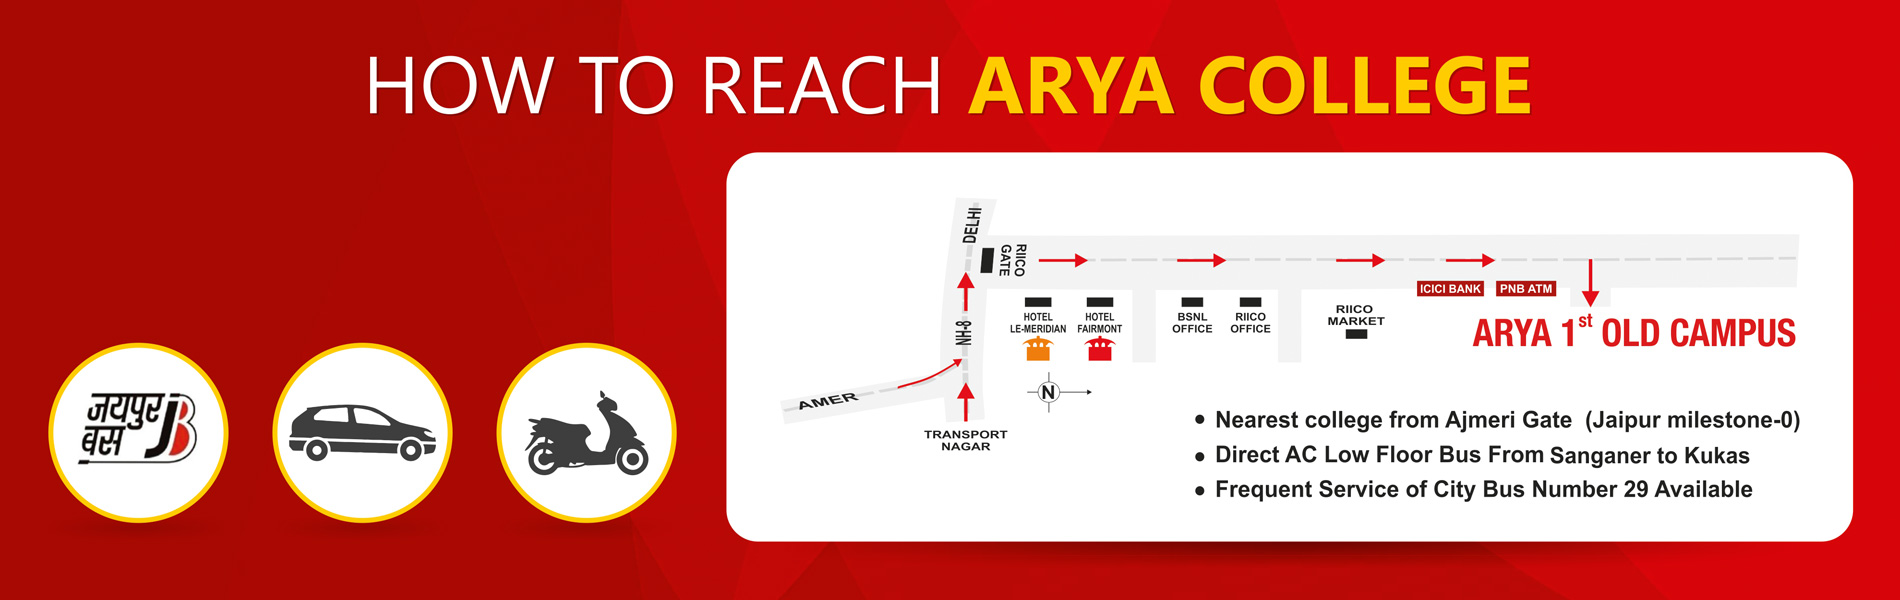 How-to-Reach-Arya-College